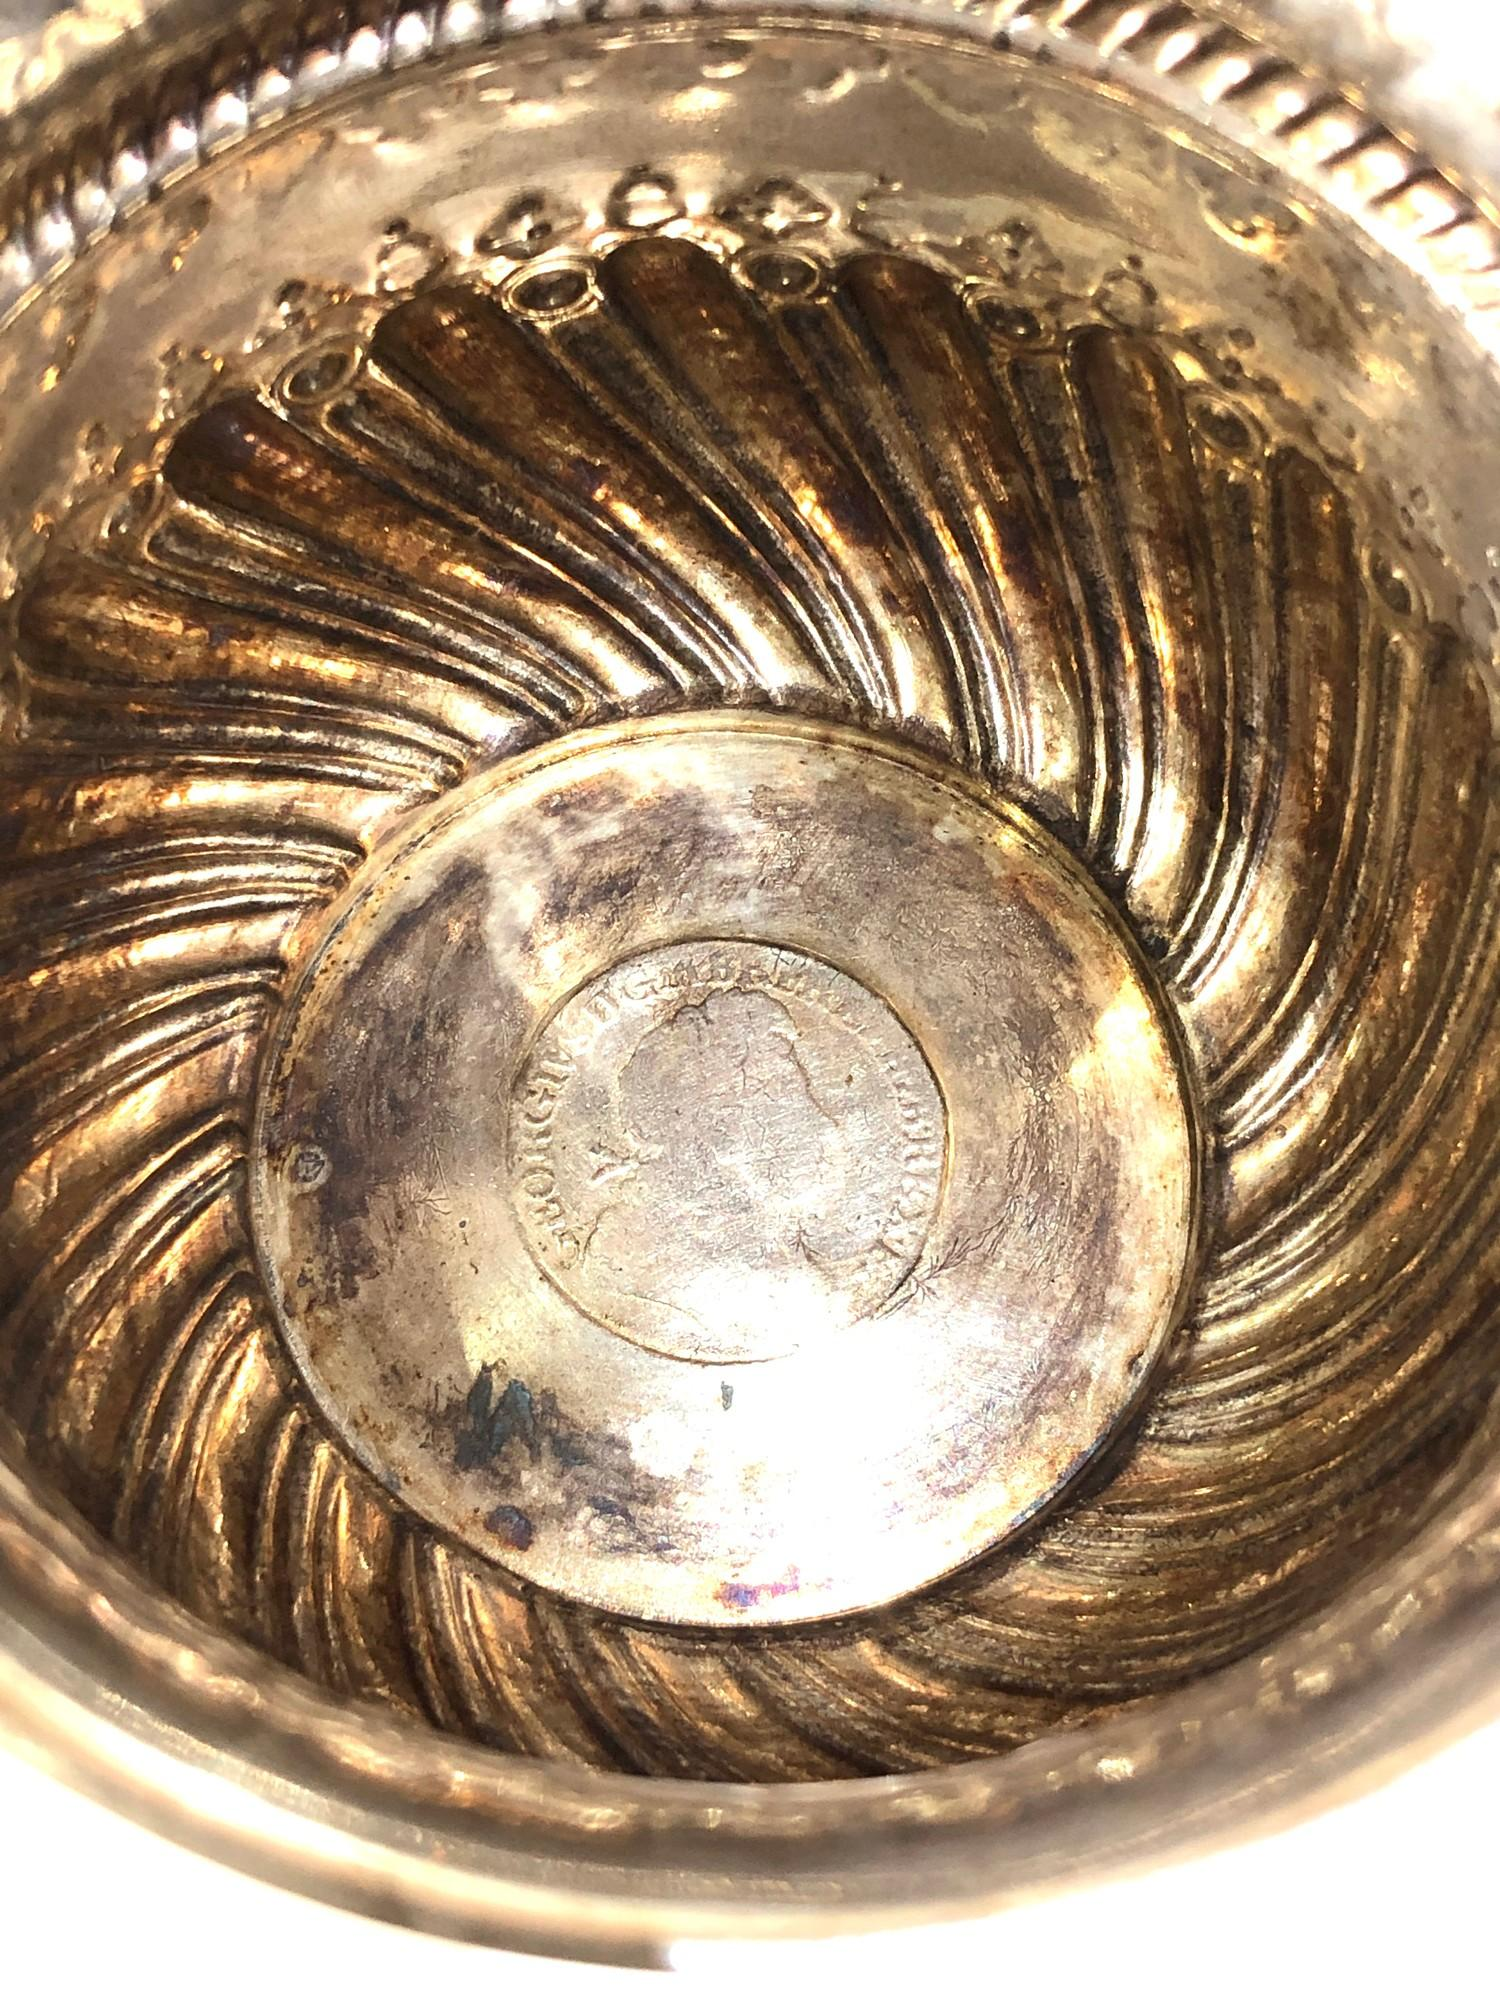 Antique victorian silver bowl with coin insert measures approx 9cm dia height 6.2cm London silver - Image 4 of 6